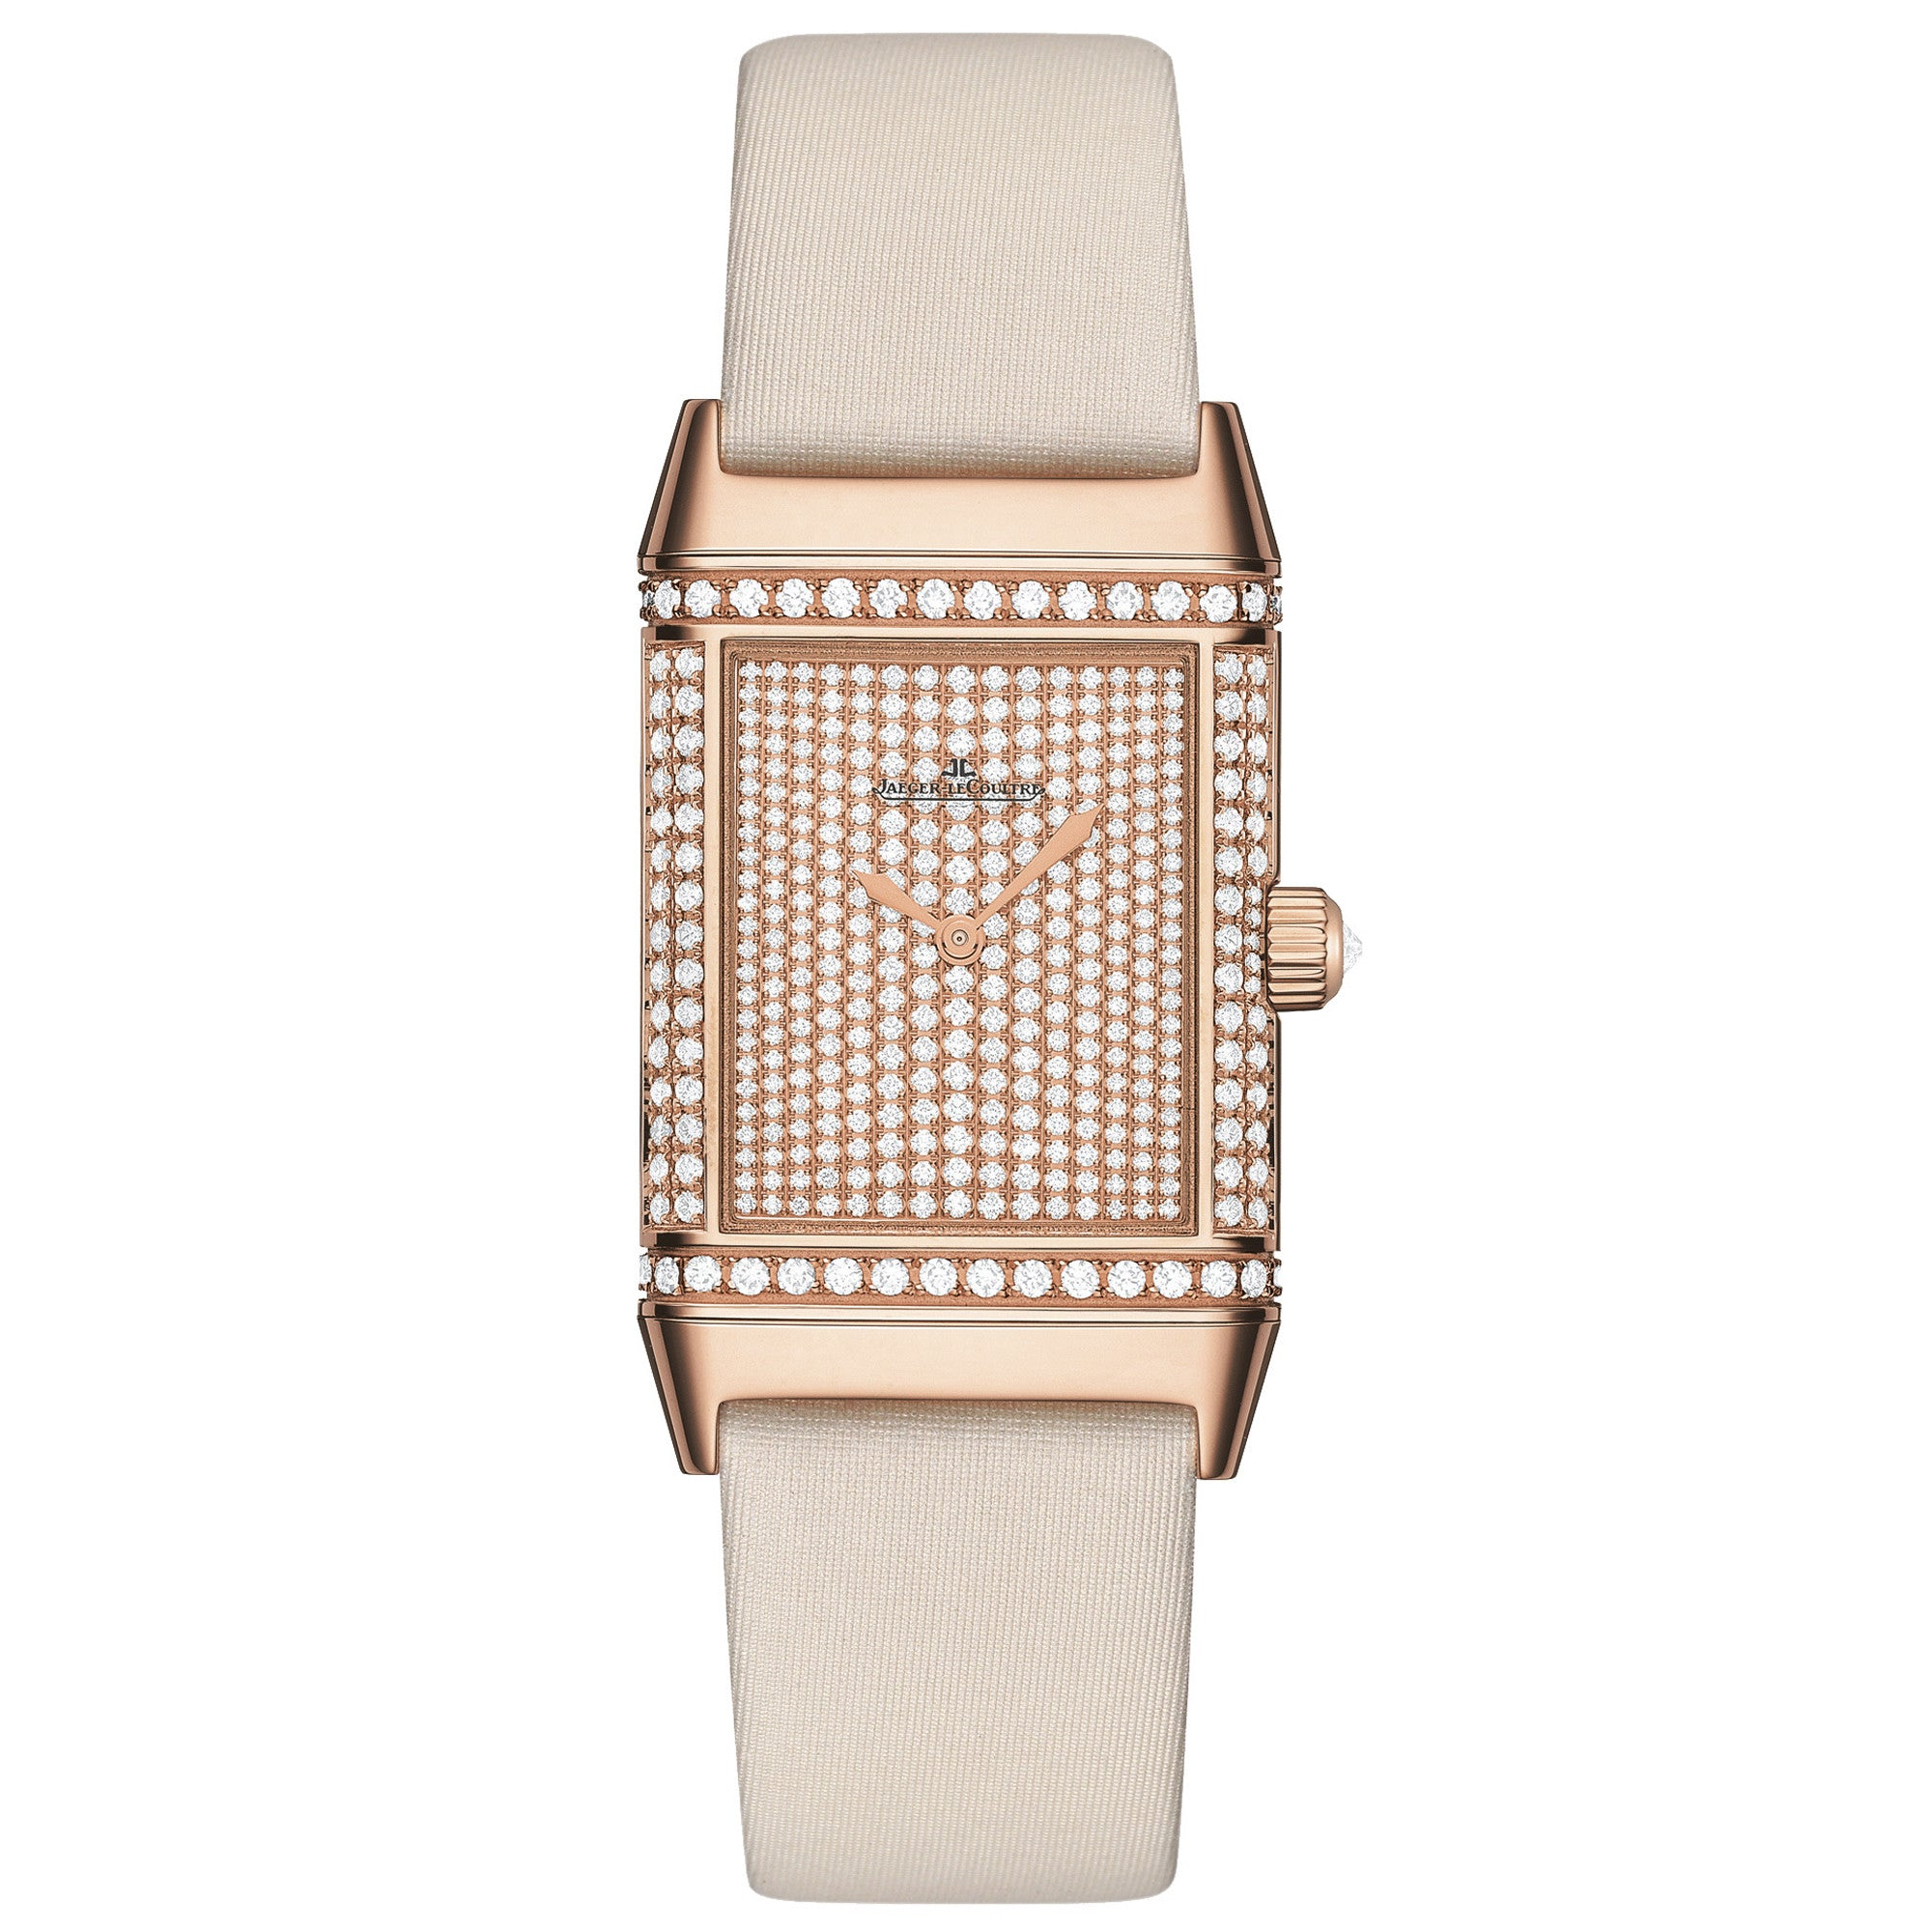 Reverso Duetto Classique Diamond Pave Dial Ladies Watch